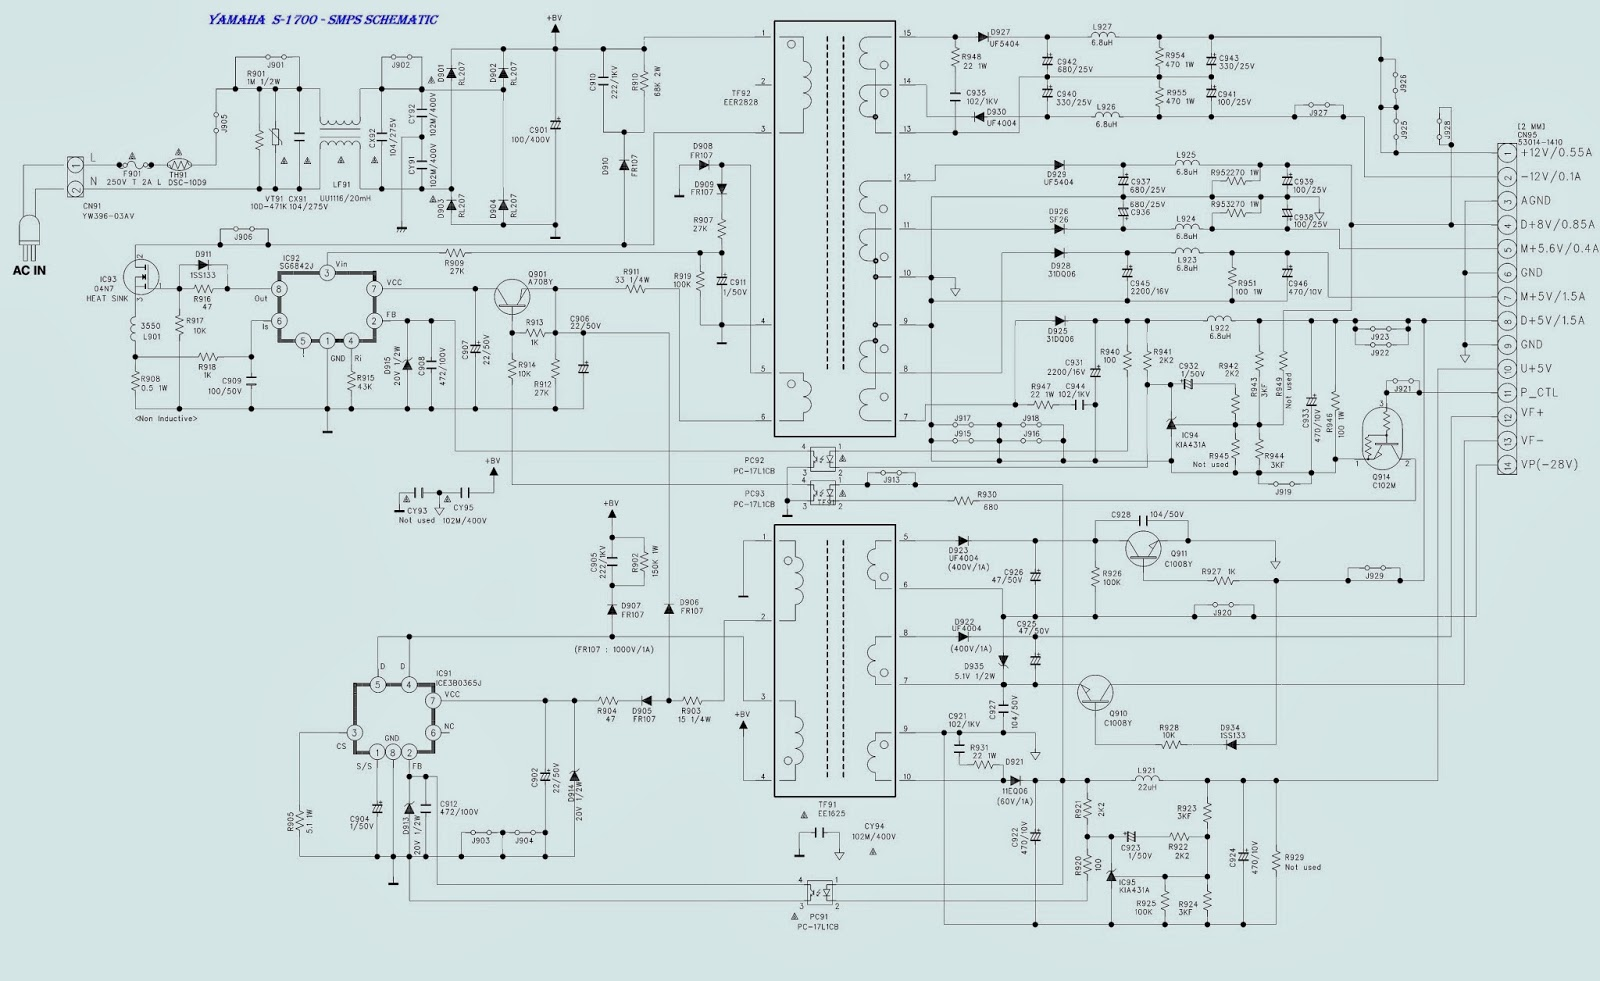 smps schematic diagram fleetwood wilderness travel trailer wiring electro help yamaha dvd s 1700 power supply